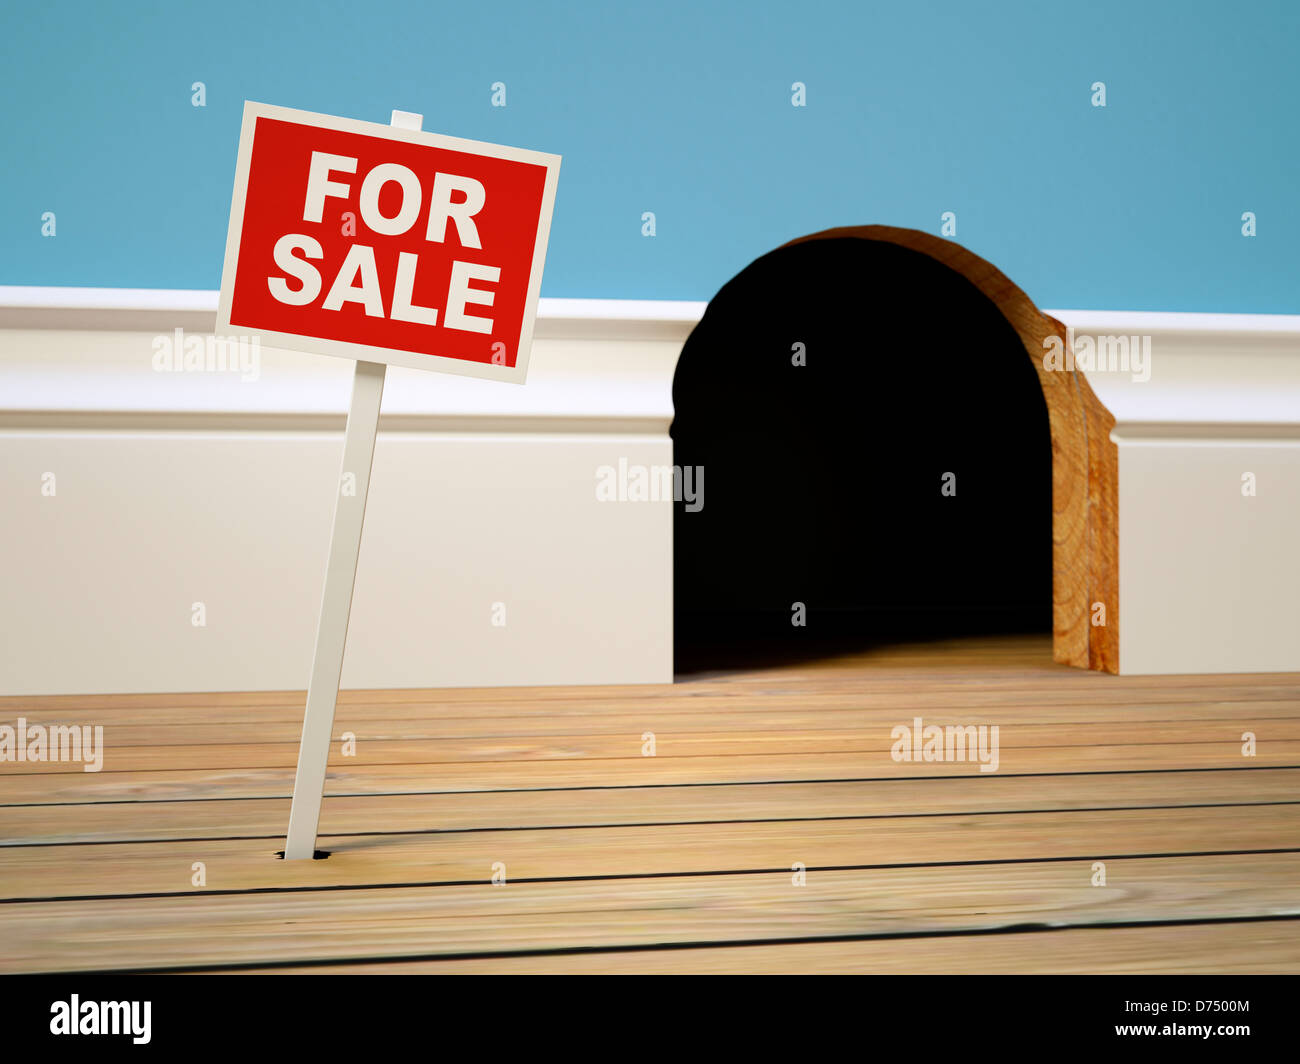 House for sale concept - Mousehole home for sale sign - housing, selling, buying, moving home, moving house, real - Stock Image